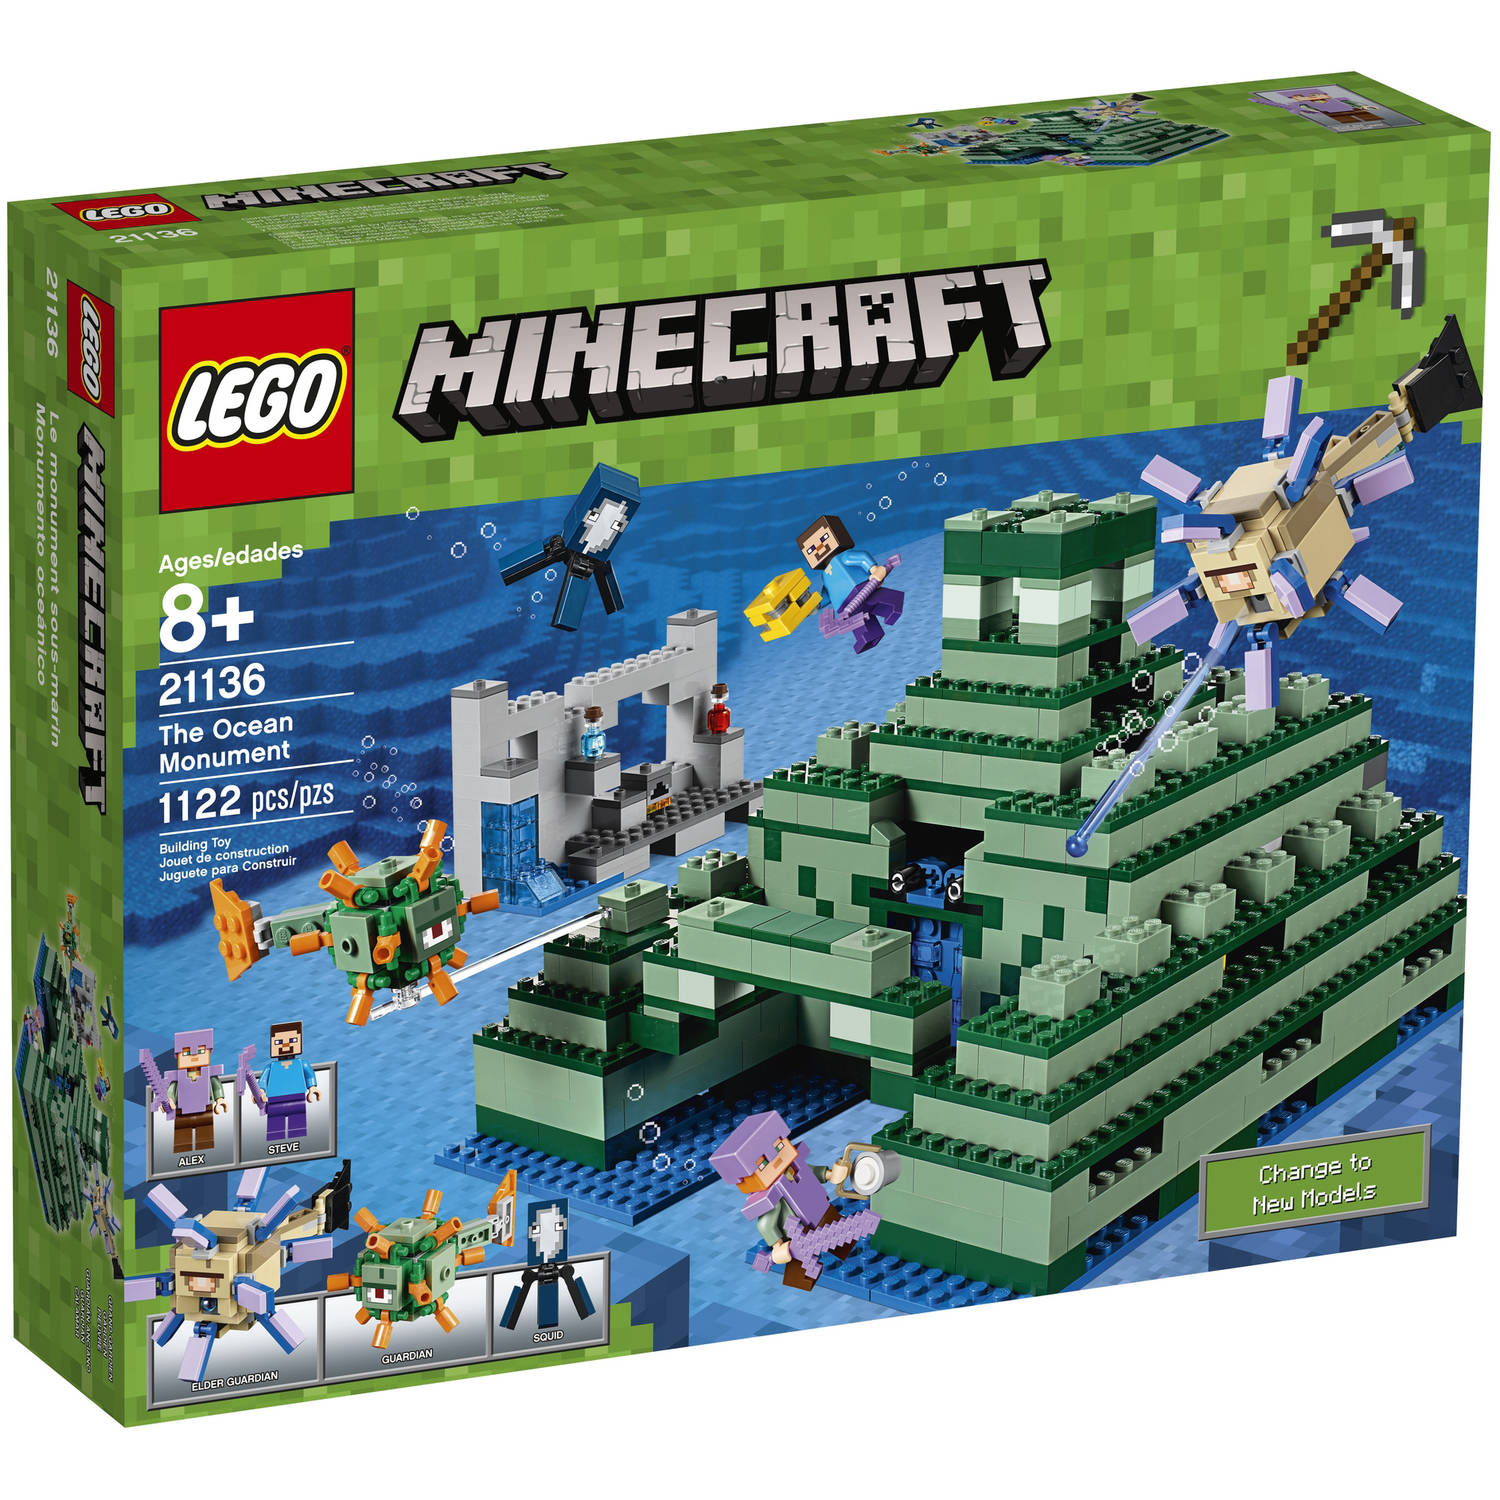 Lego Minecraft The Ocean Monument 21136 by LEGO Systems, Inc.